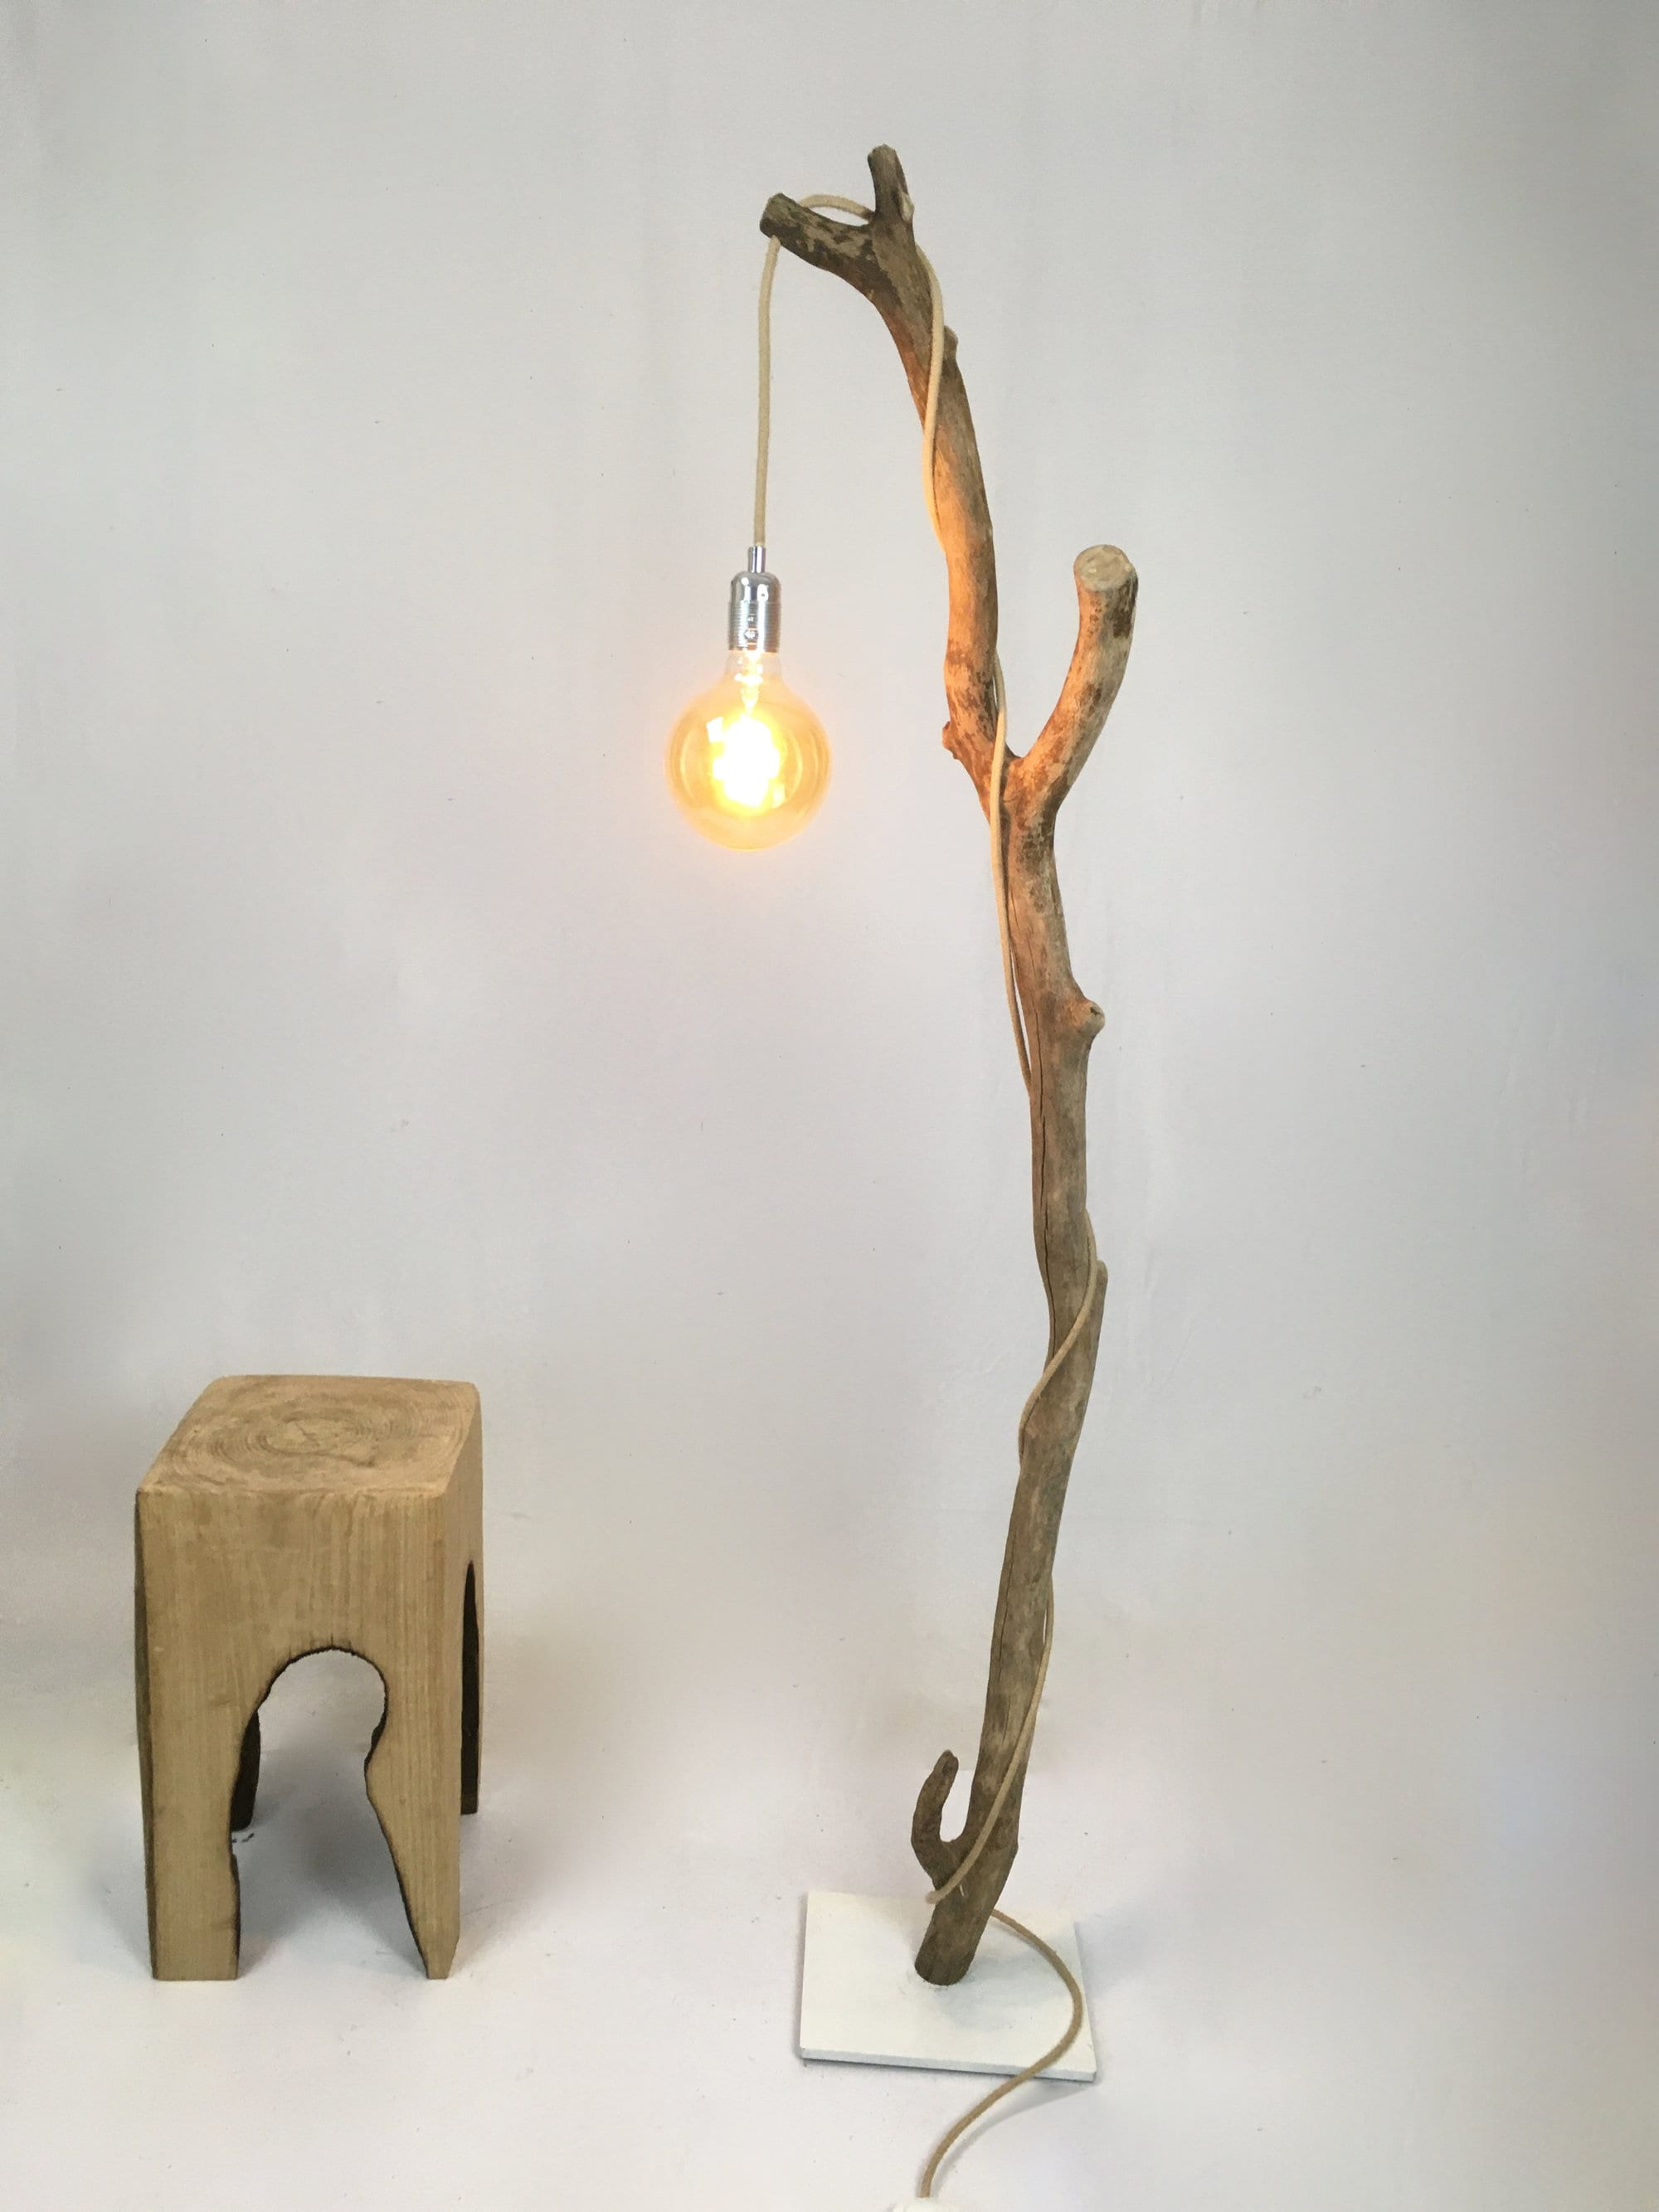 Beautiful Driftwood Floor Lamp With Cloth Cable And Vintage Bulb